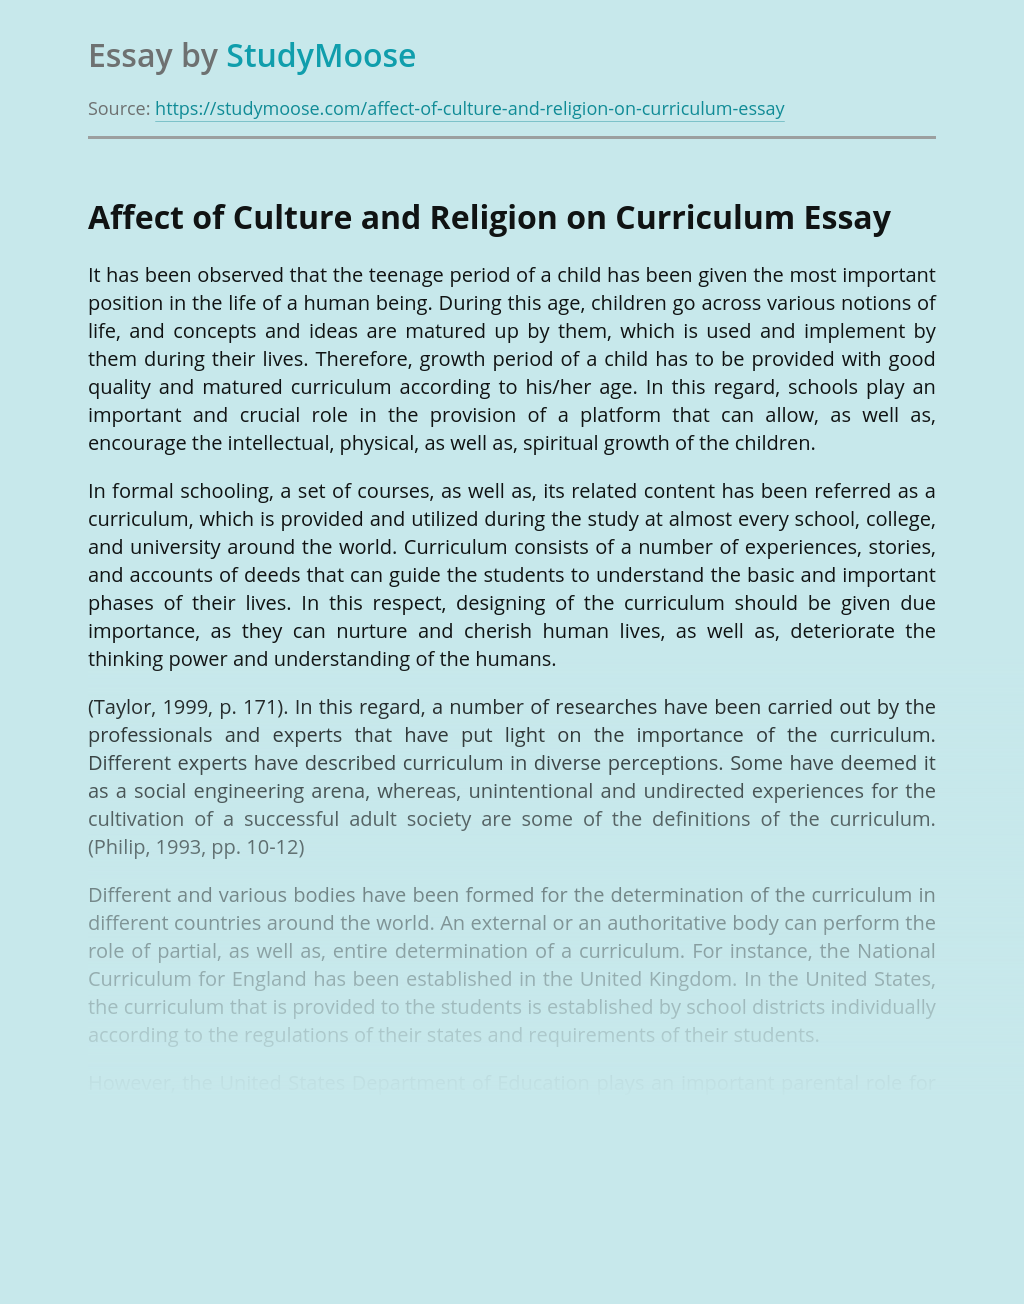 Affect of Culture and Religion on Curriculum